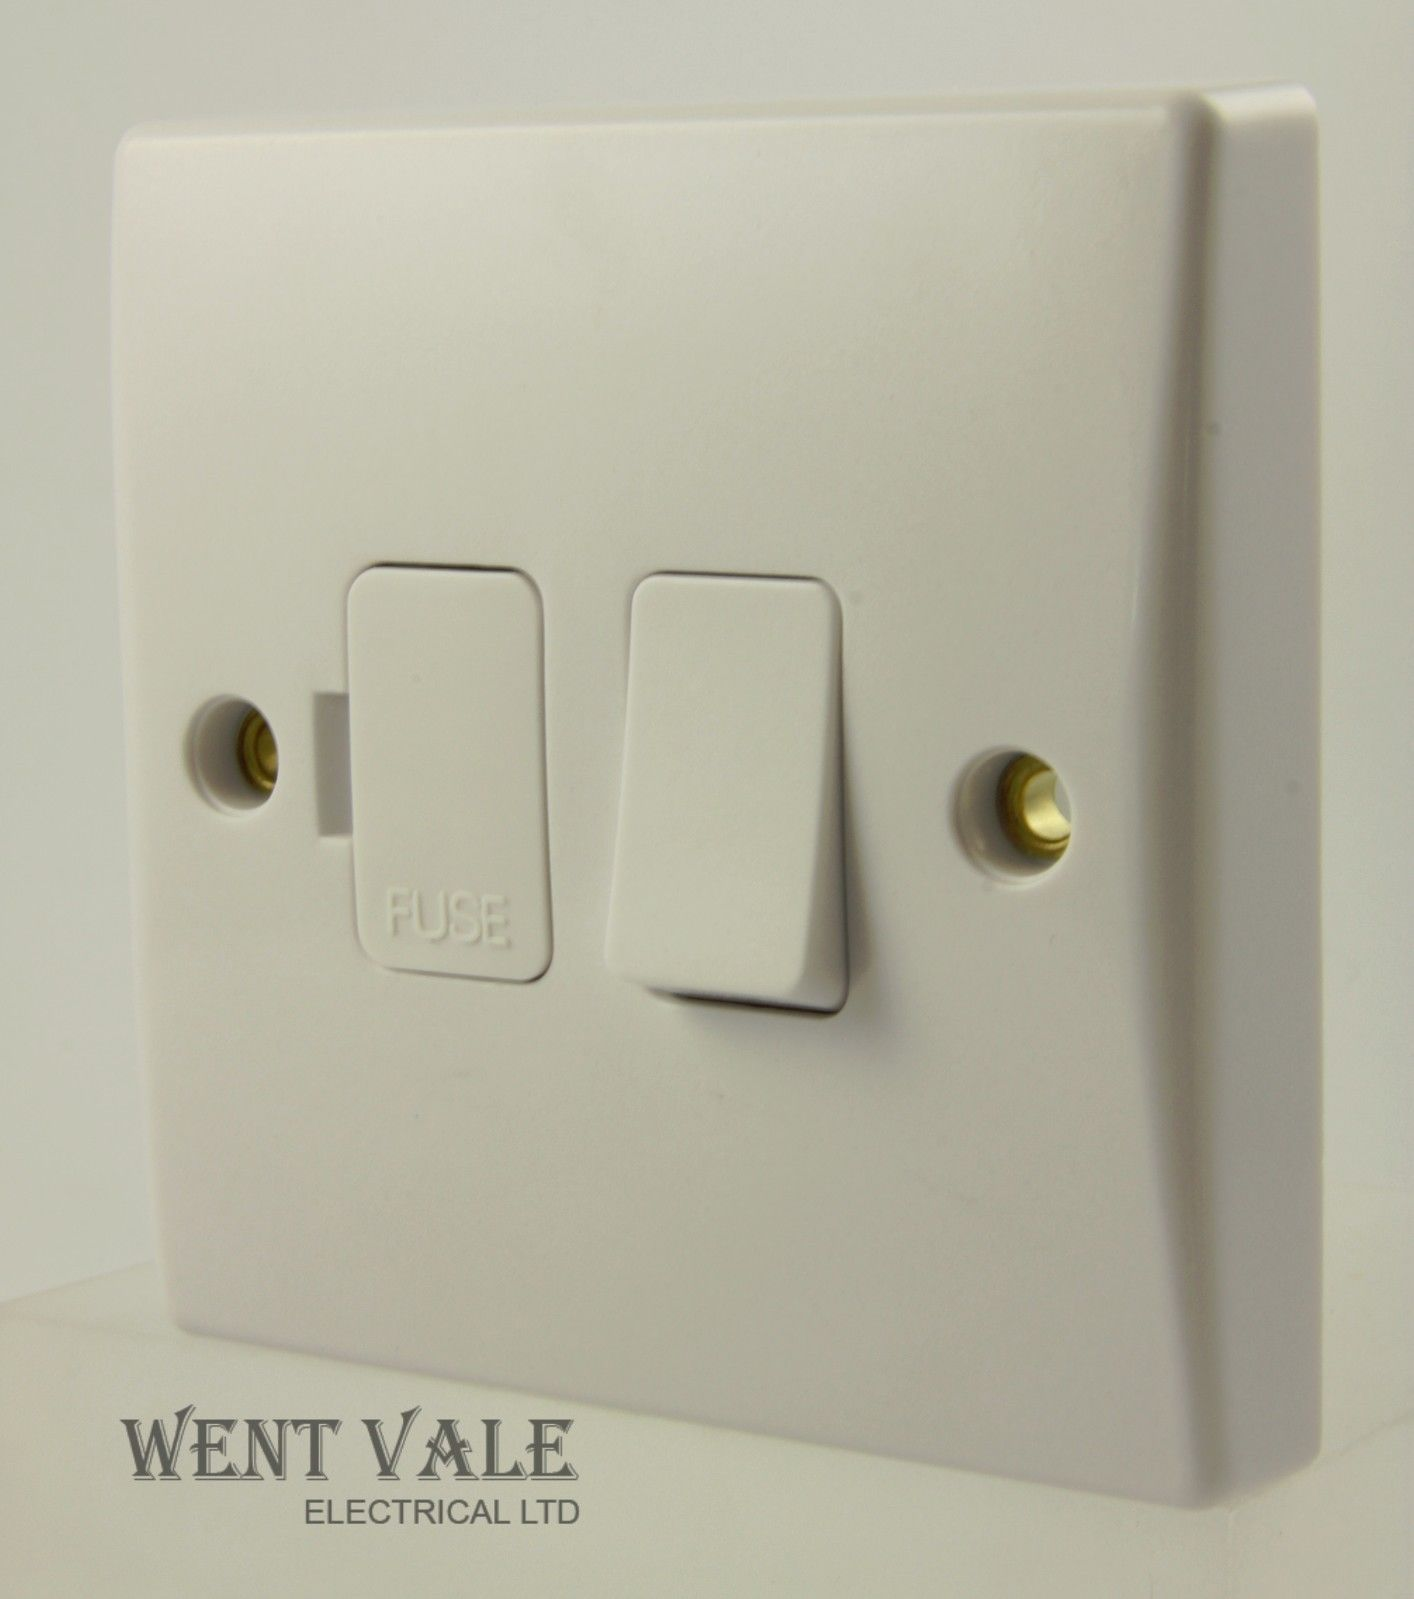 Get Exclusive Moulded Gu5013 13 Amp Sw Fused Spur With Flex Wiring Light Switch Outlet Un Used